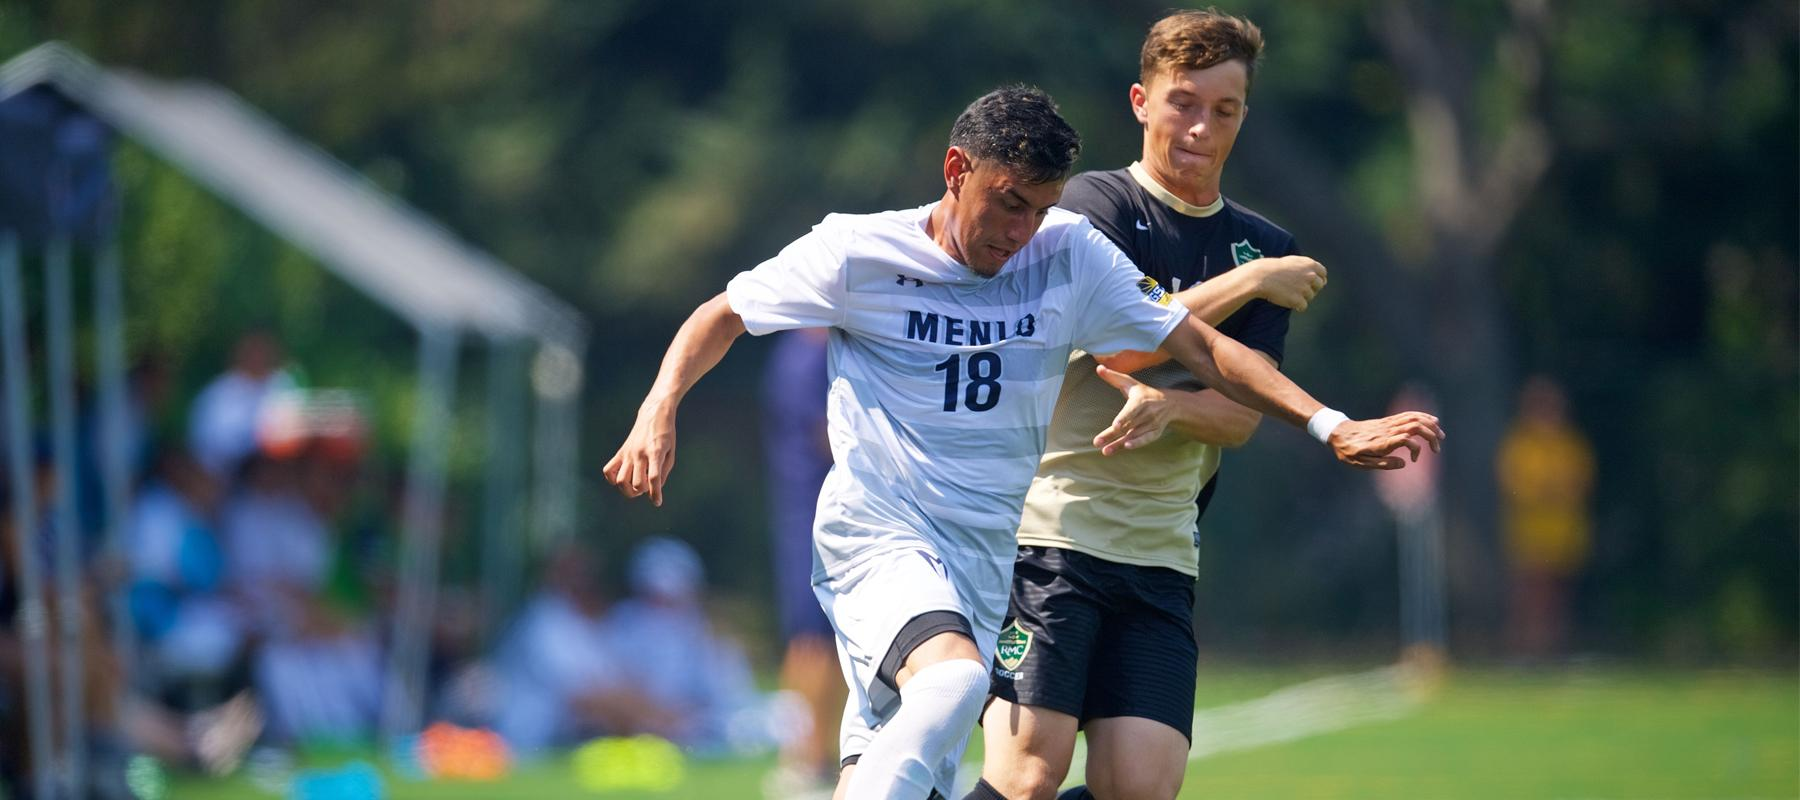 Second half offense propels Men's Soccer to 3-1 win over Hawks